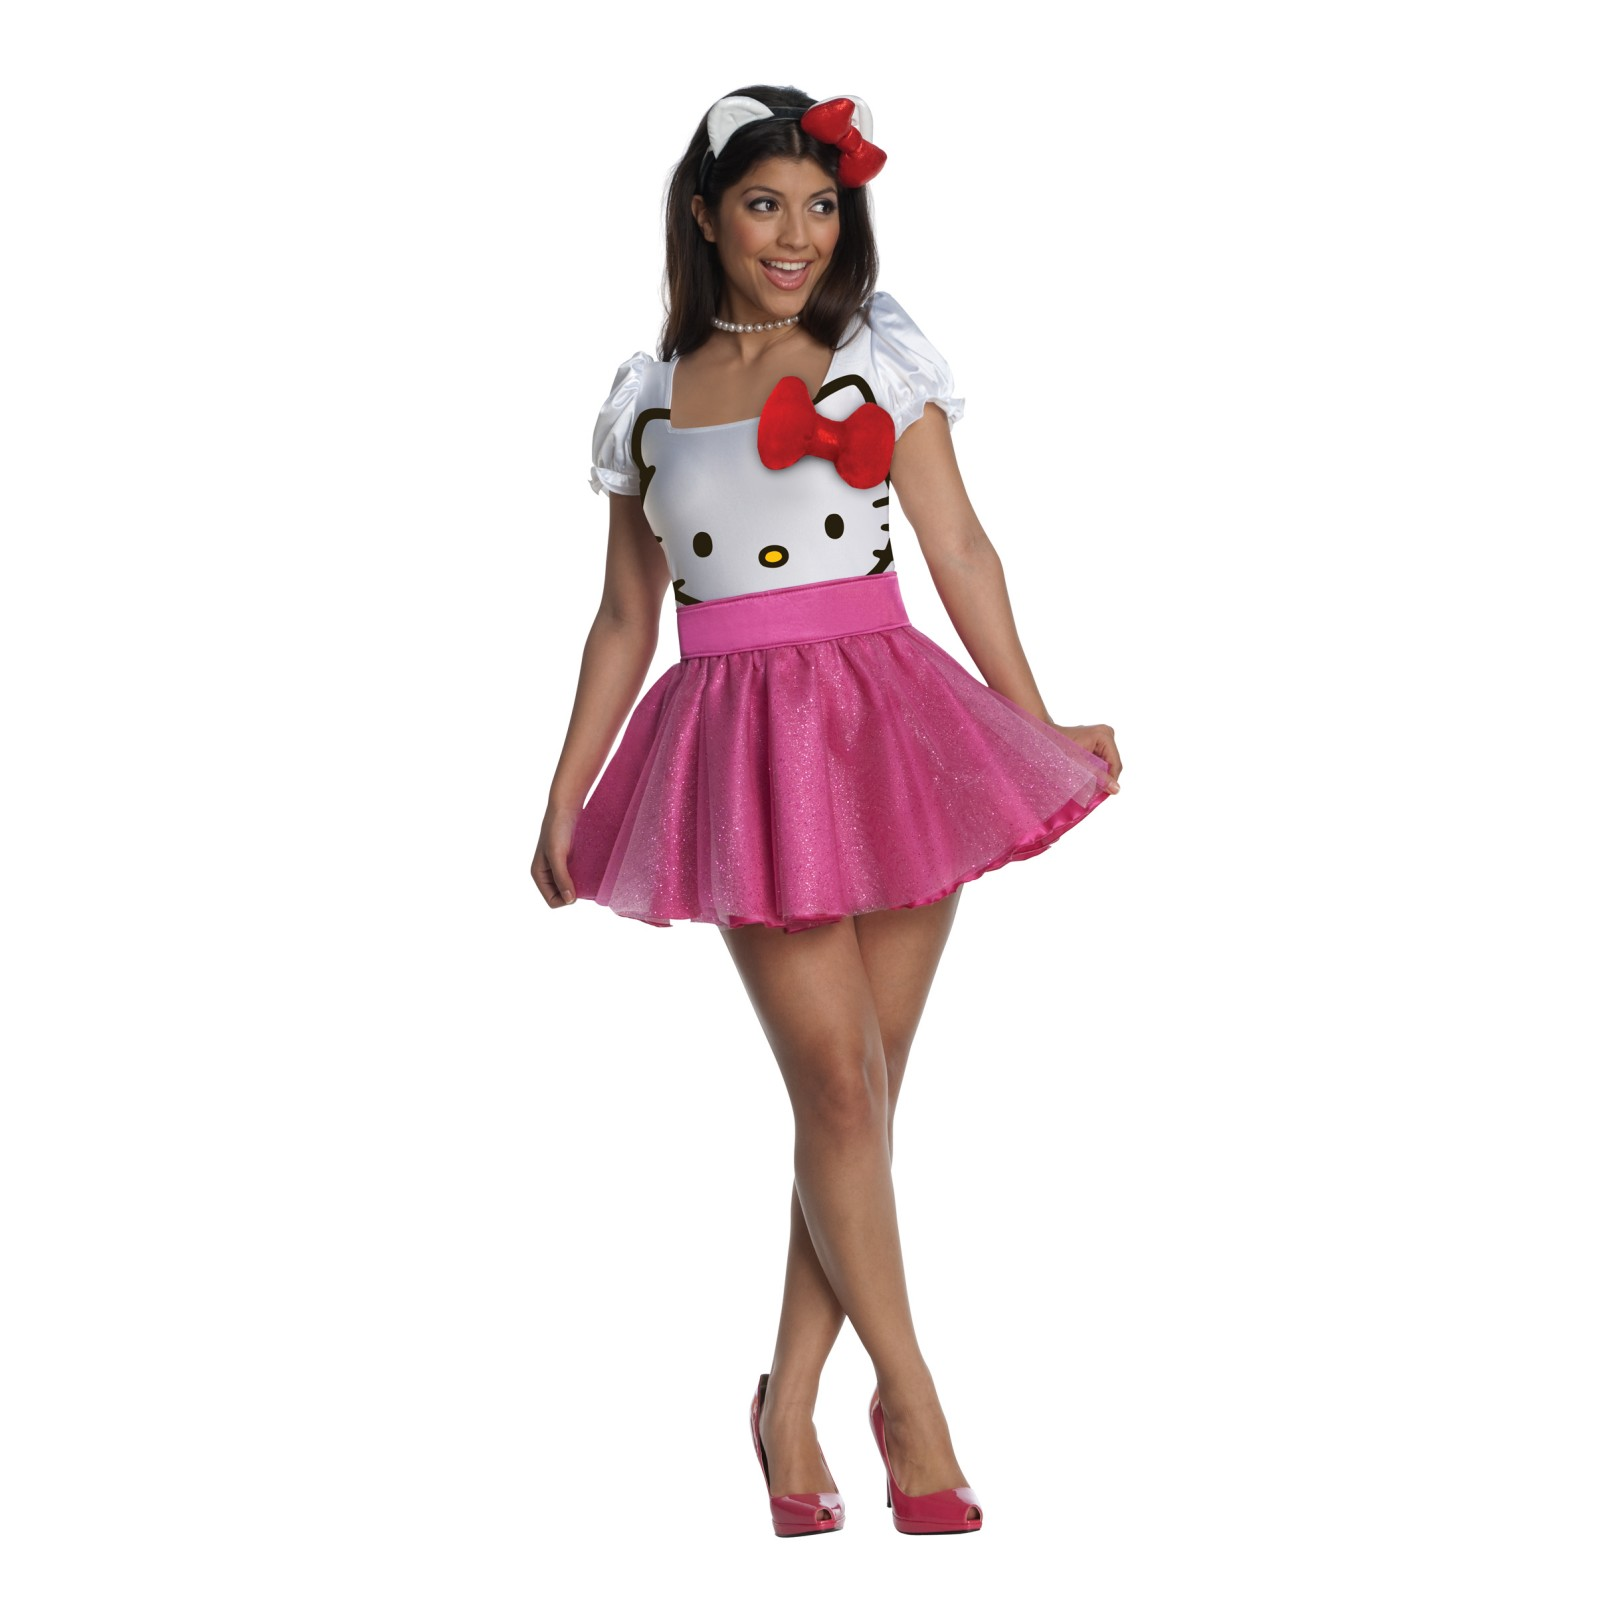 hello kitty first up on my list of costumes is one of hello kitty its super cute for halloween because not only is it girly but who doesnt like hello